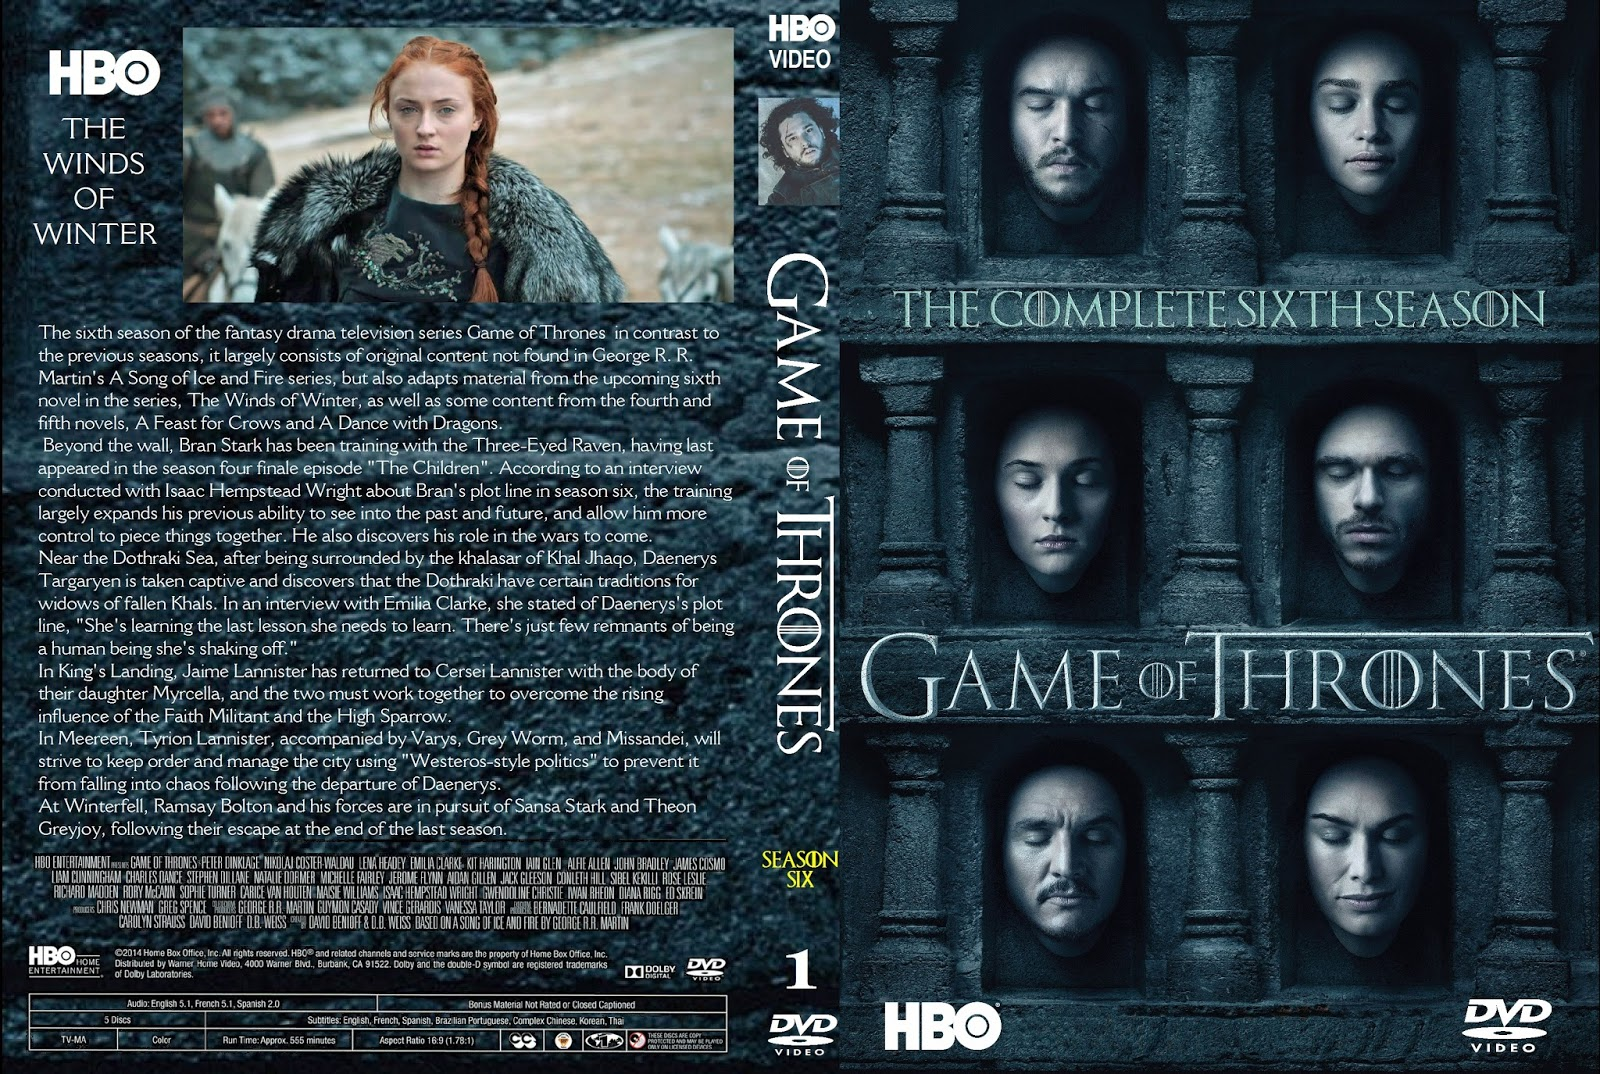 Download Game of Thrones S06E05 480p HDTV x264 Dual Áudio Game 2Bof 2BThrones 2B6 25C2 25AA 2BTemporada 2B  2BXANDAODOWNLOAD